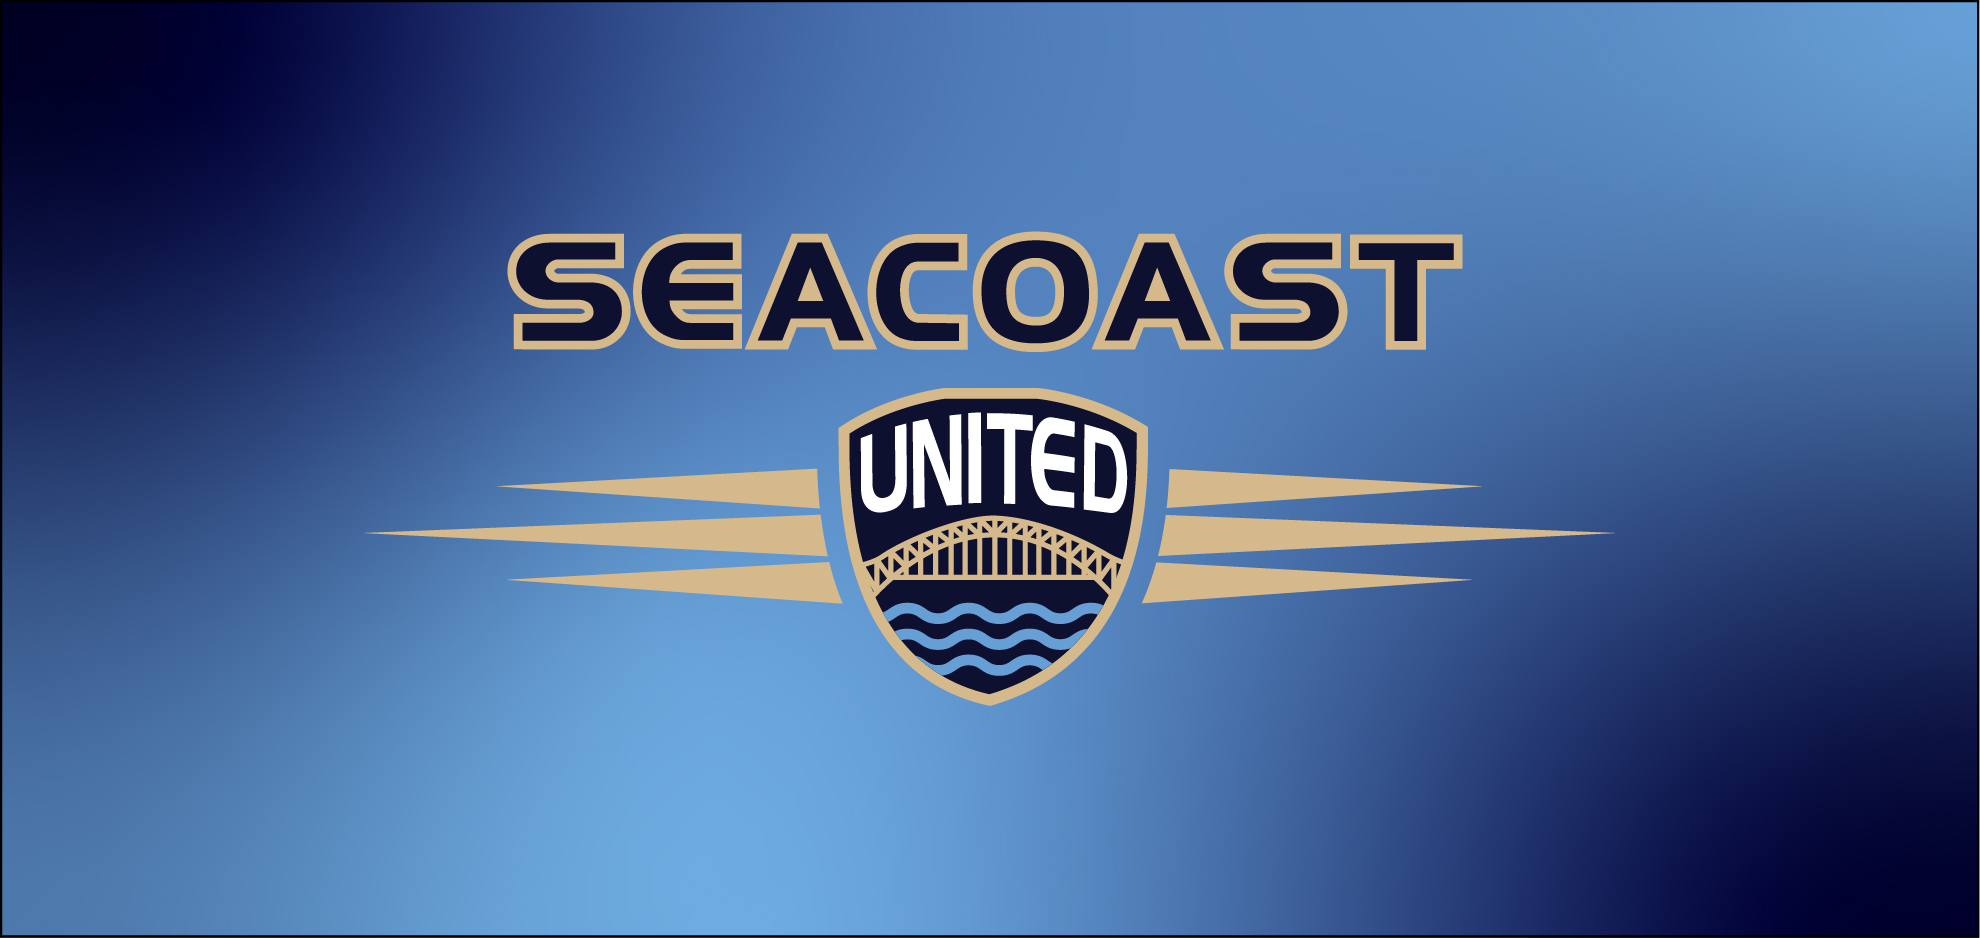 SEACOAST UNITED SPORTS CLUB WEEKLY UPDATE: MAY 29, 2020